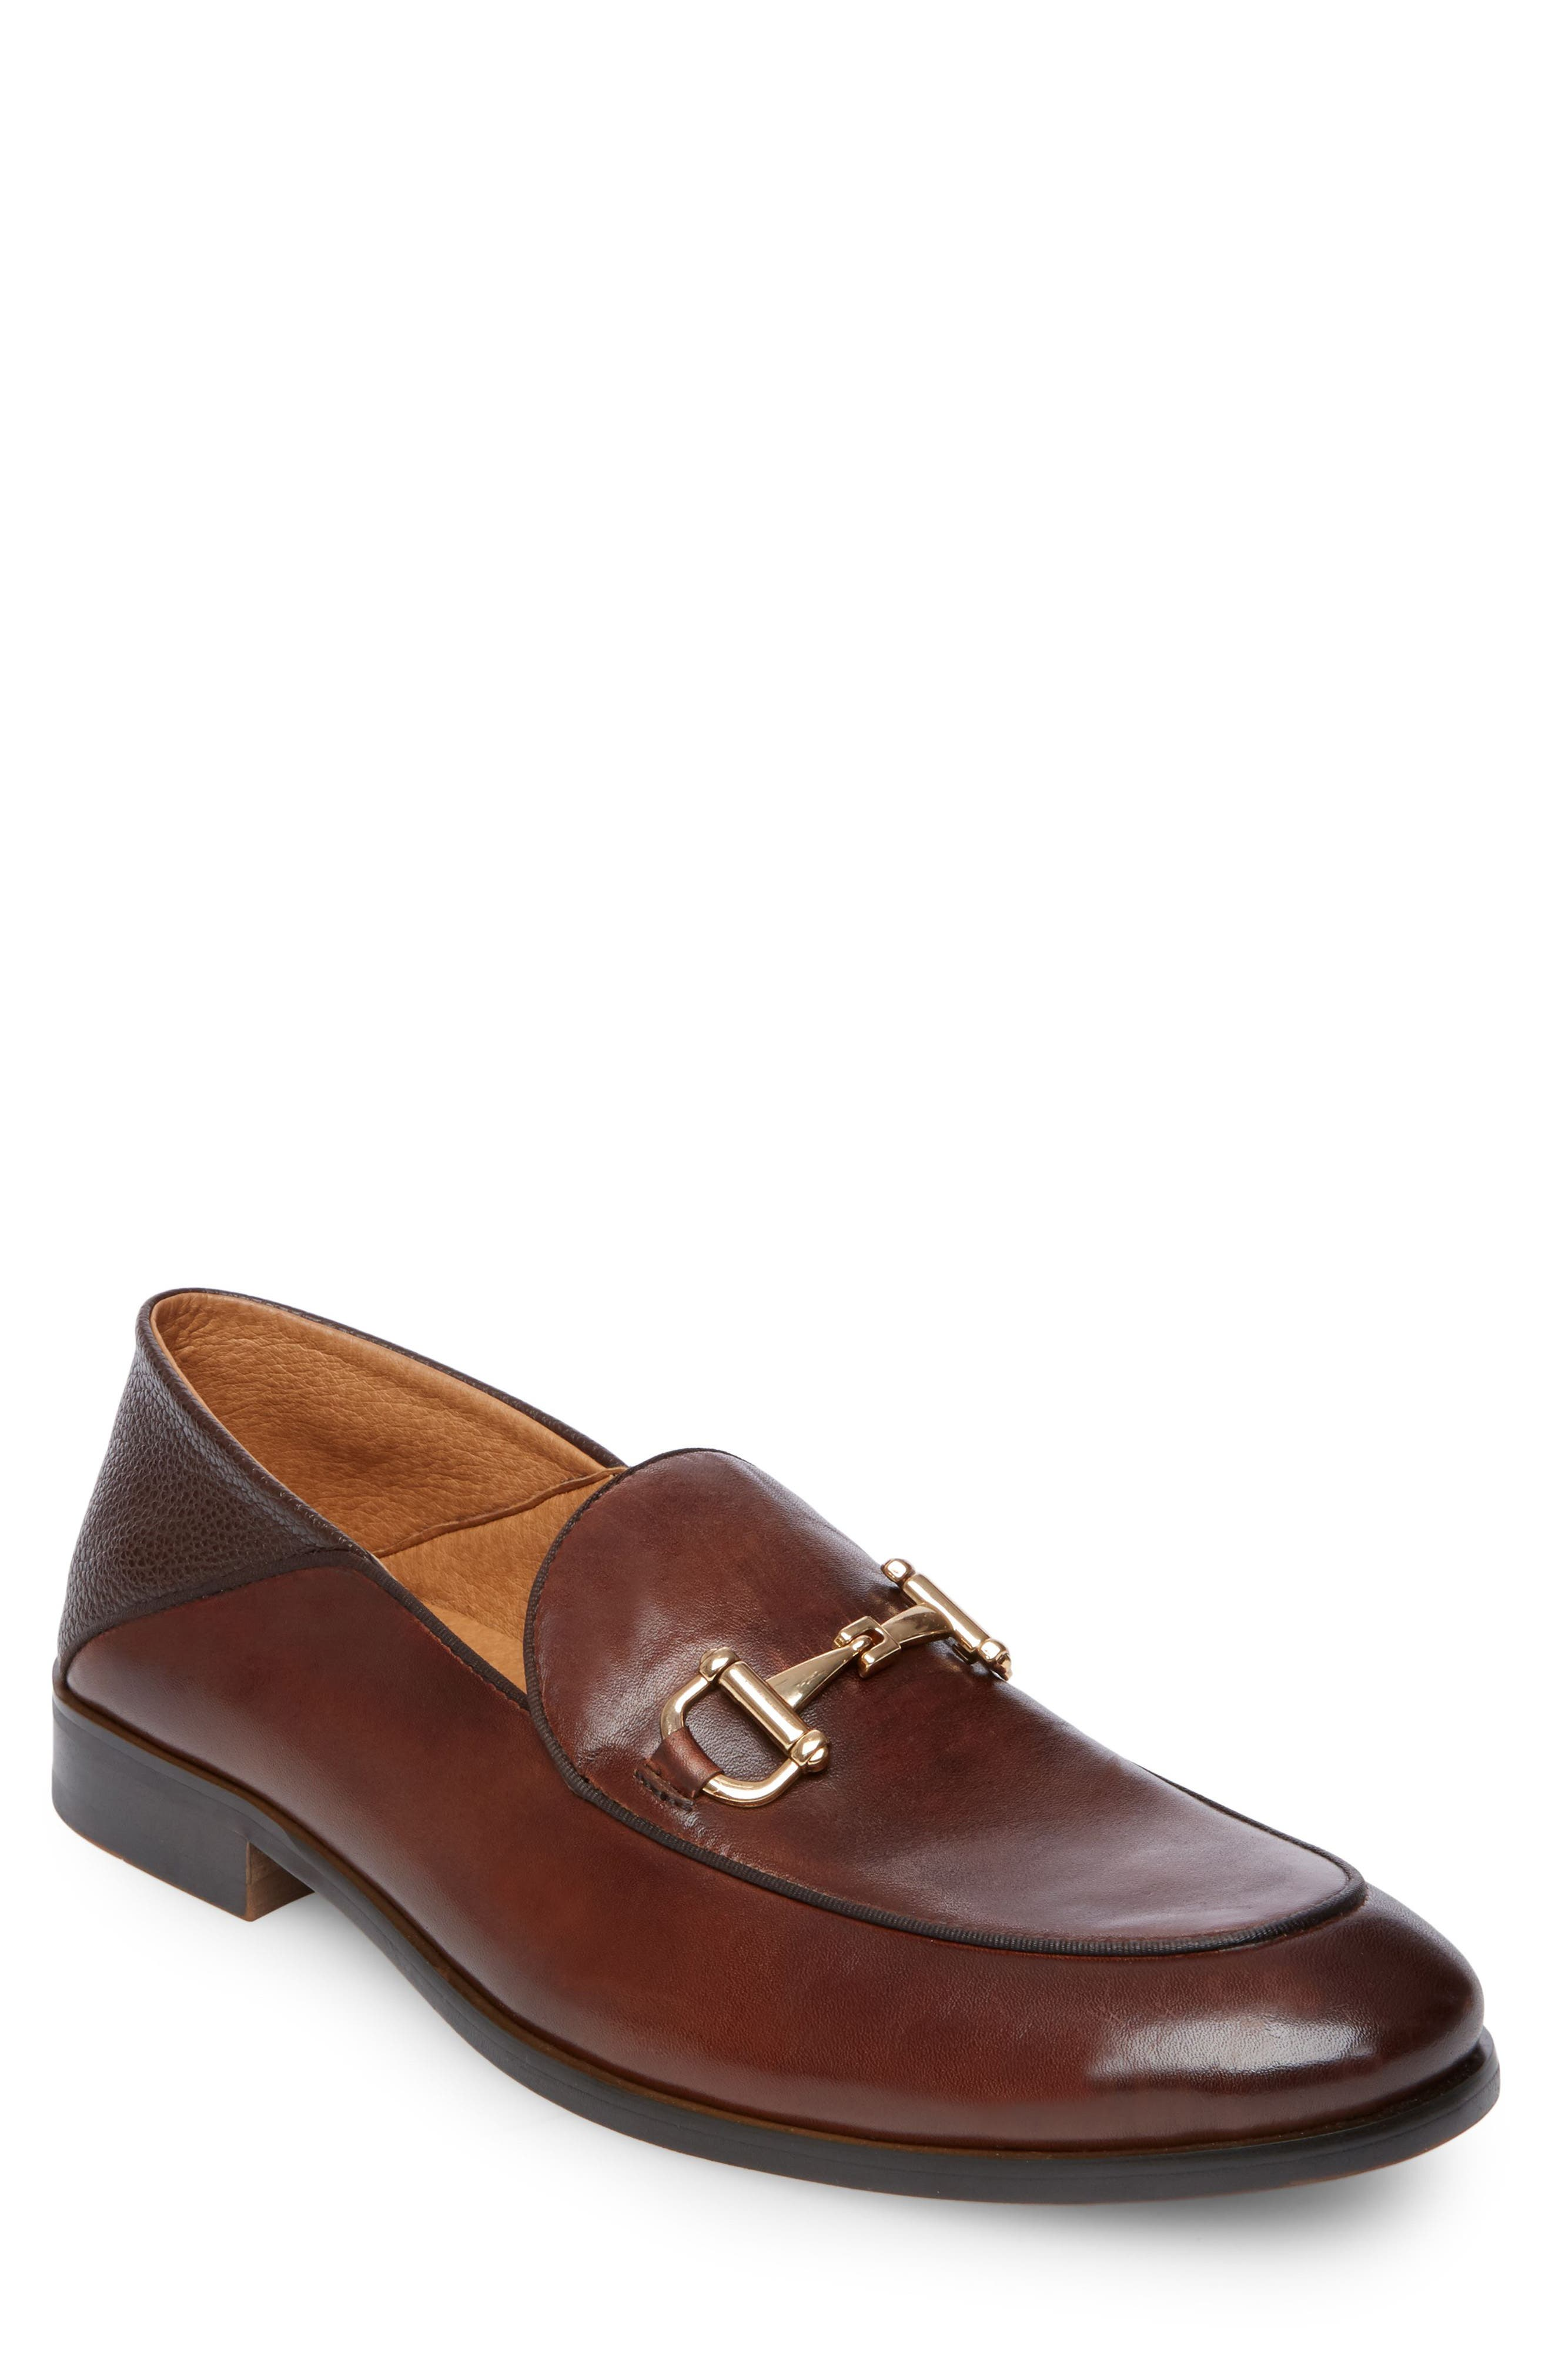 Sauce Bit Collapsible Loafer,                             Main thumbnail 2, color,